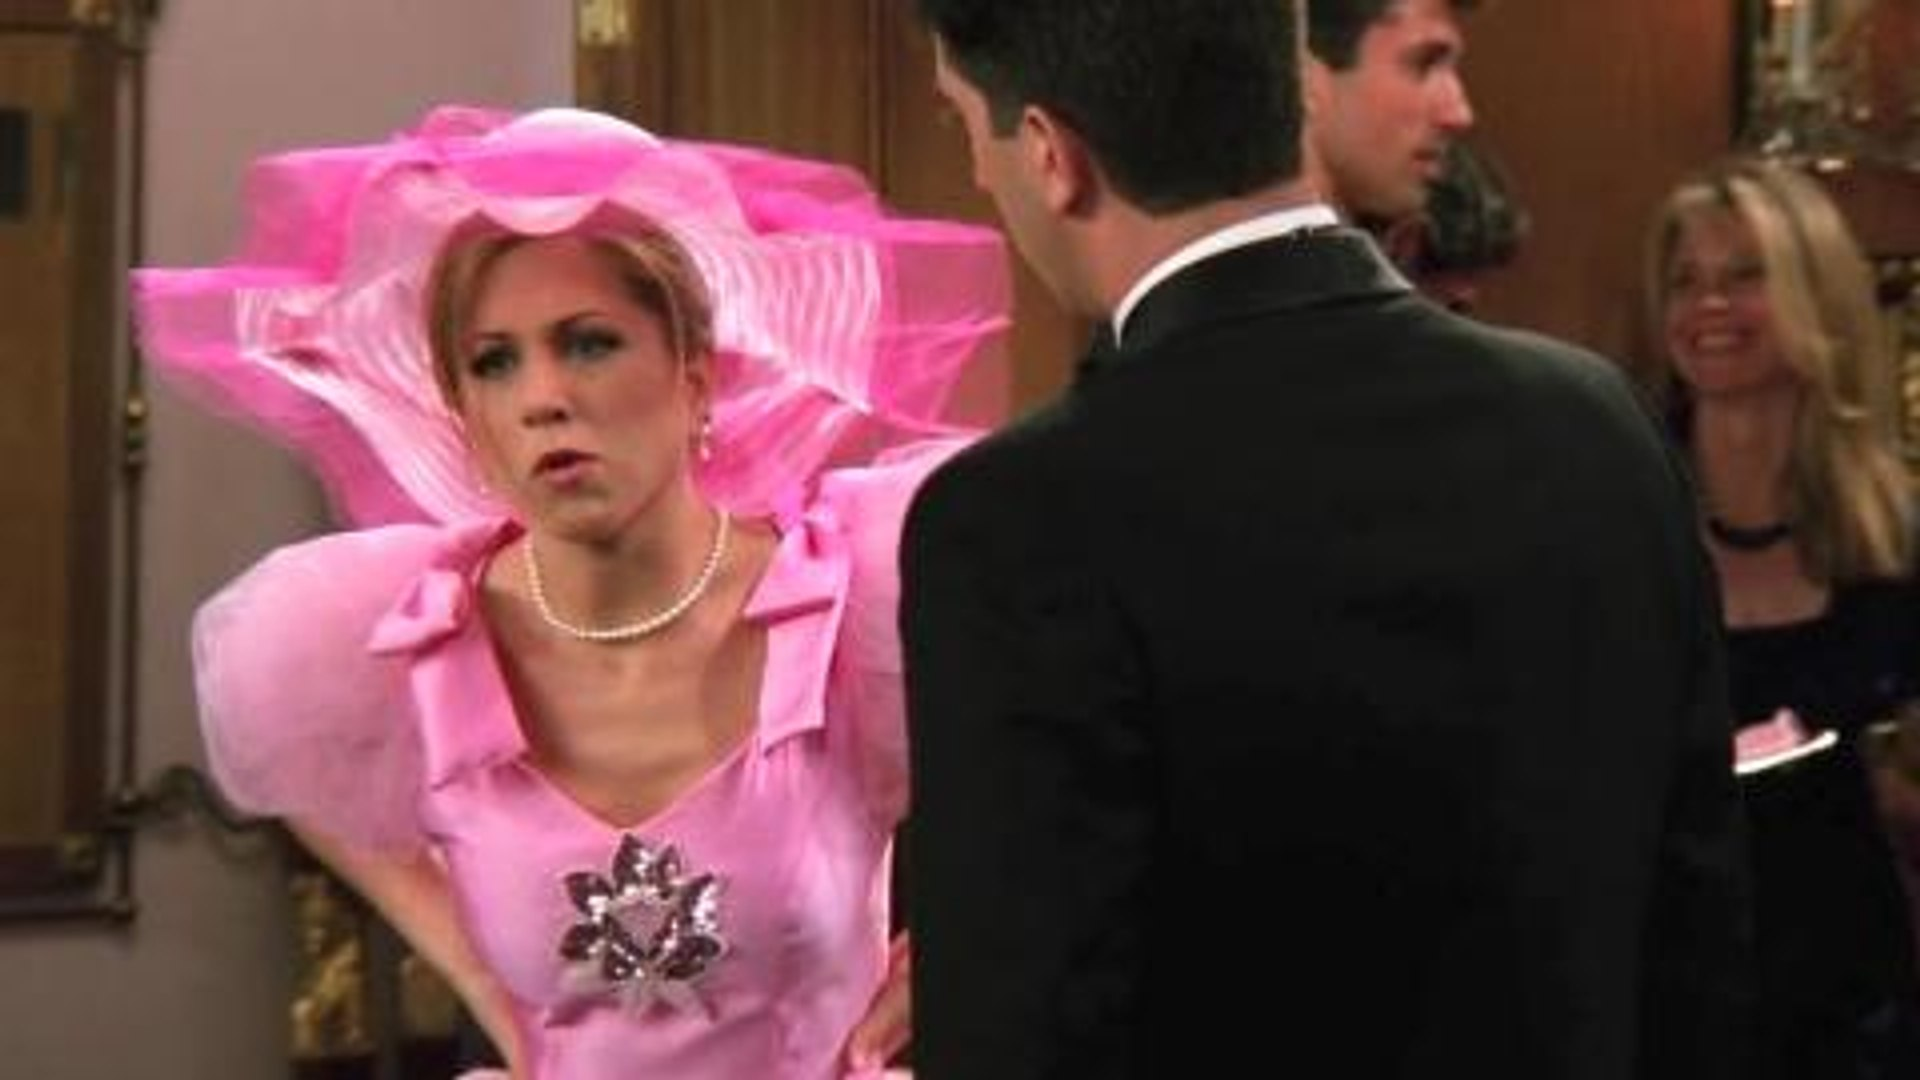 Top 10 Ugliest Bridesmaid Dresses in Movies and TV